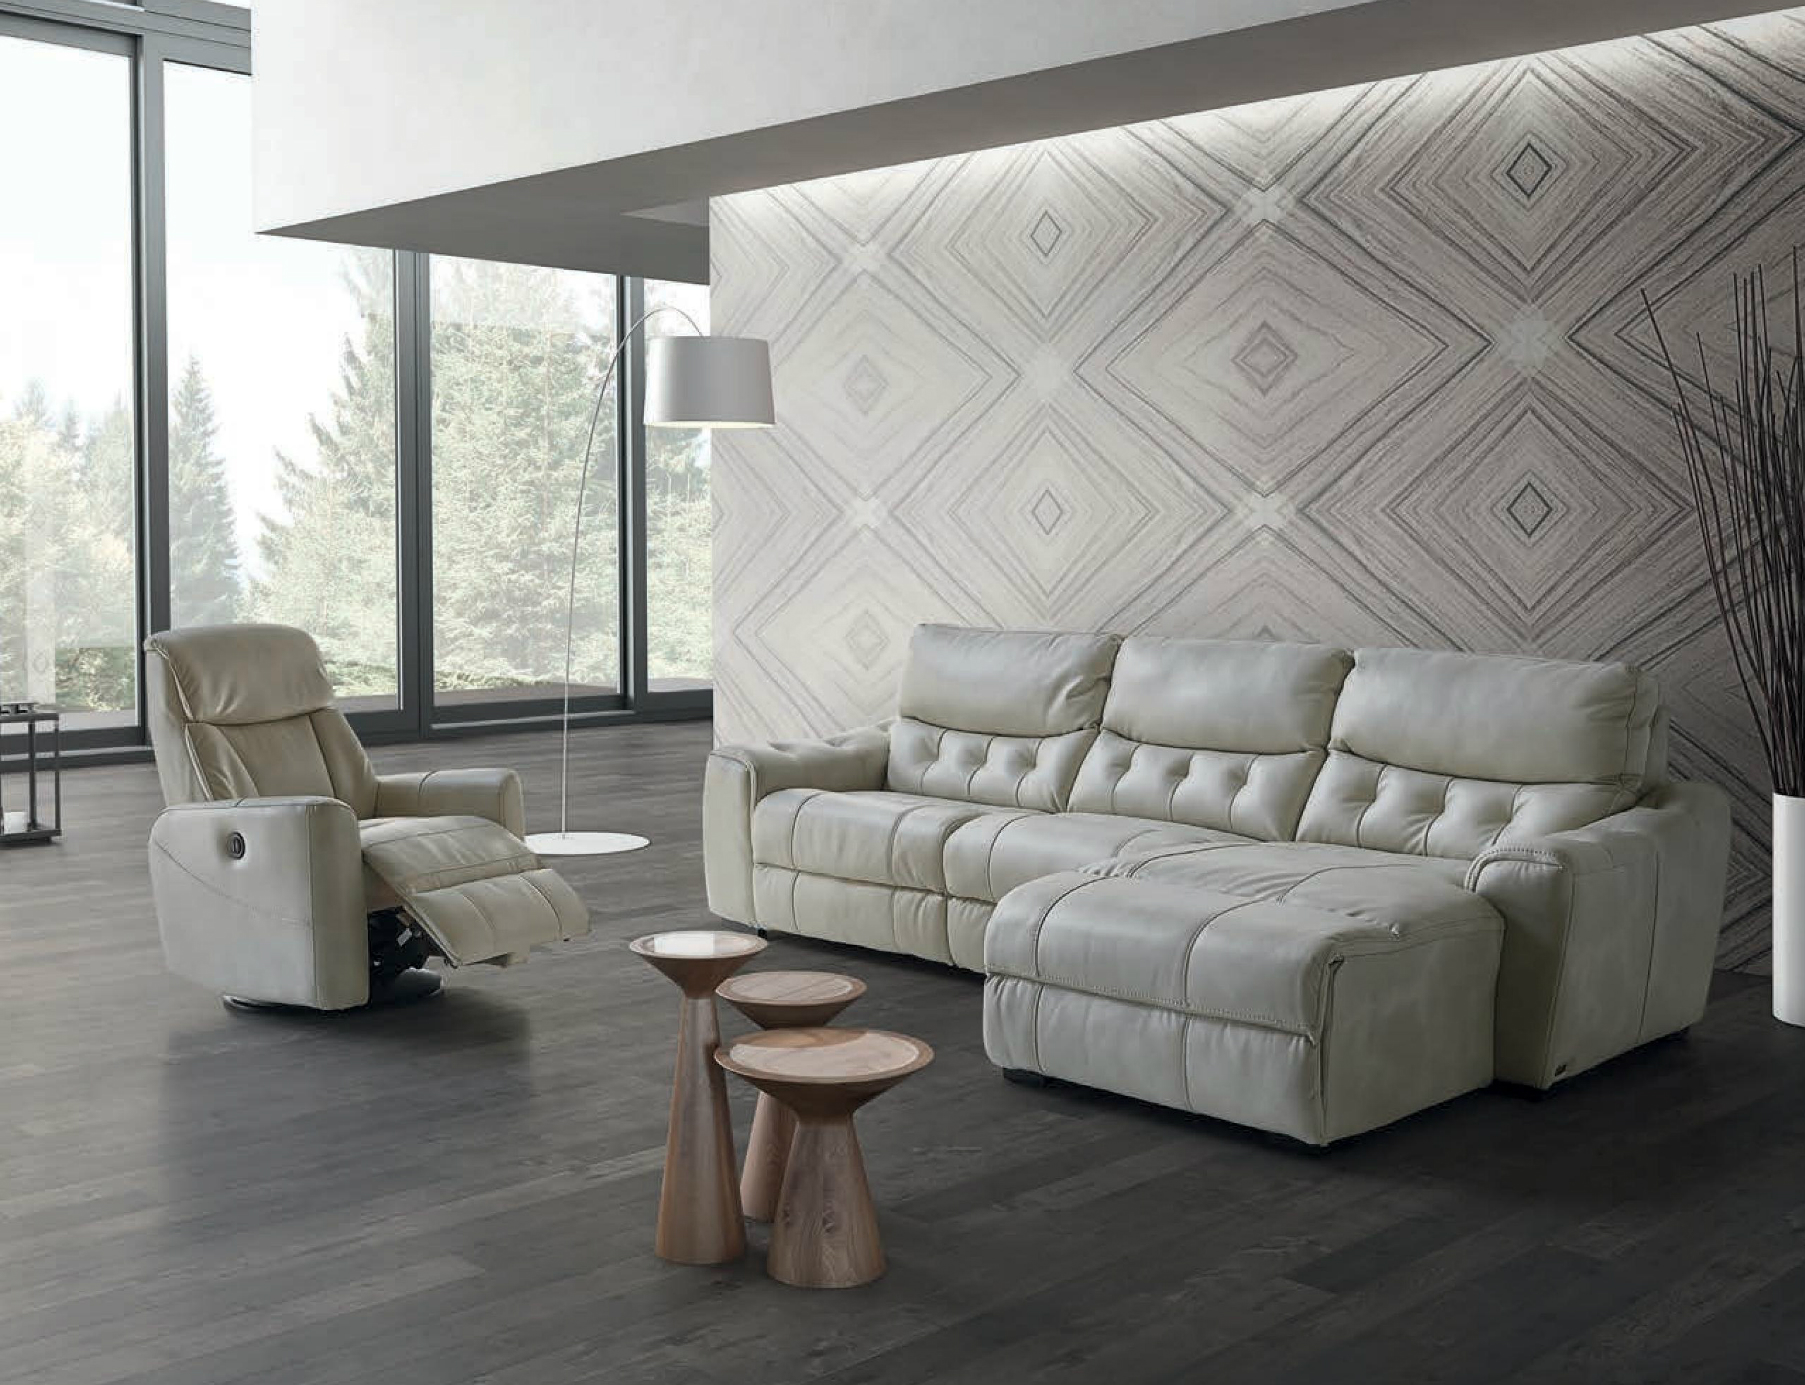 Sof chaise long 1005 com relax el ctrico mundo do sof for Mundo sofas